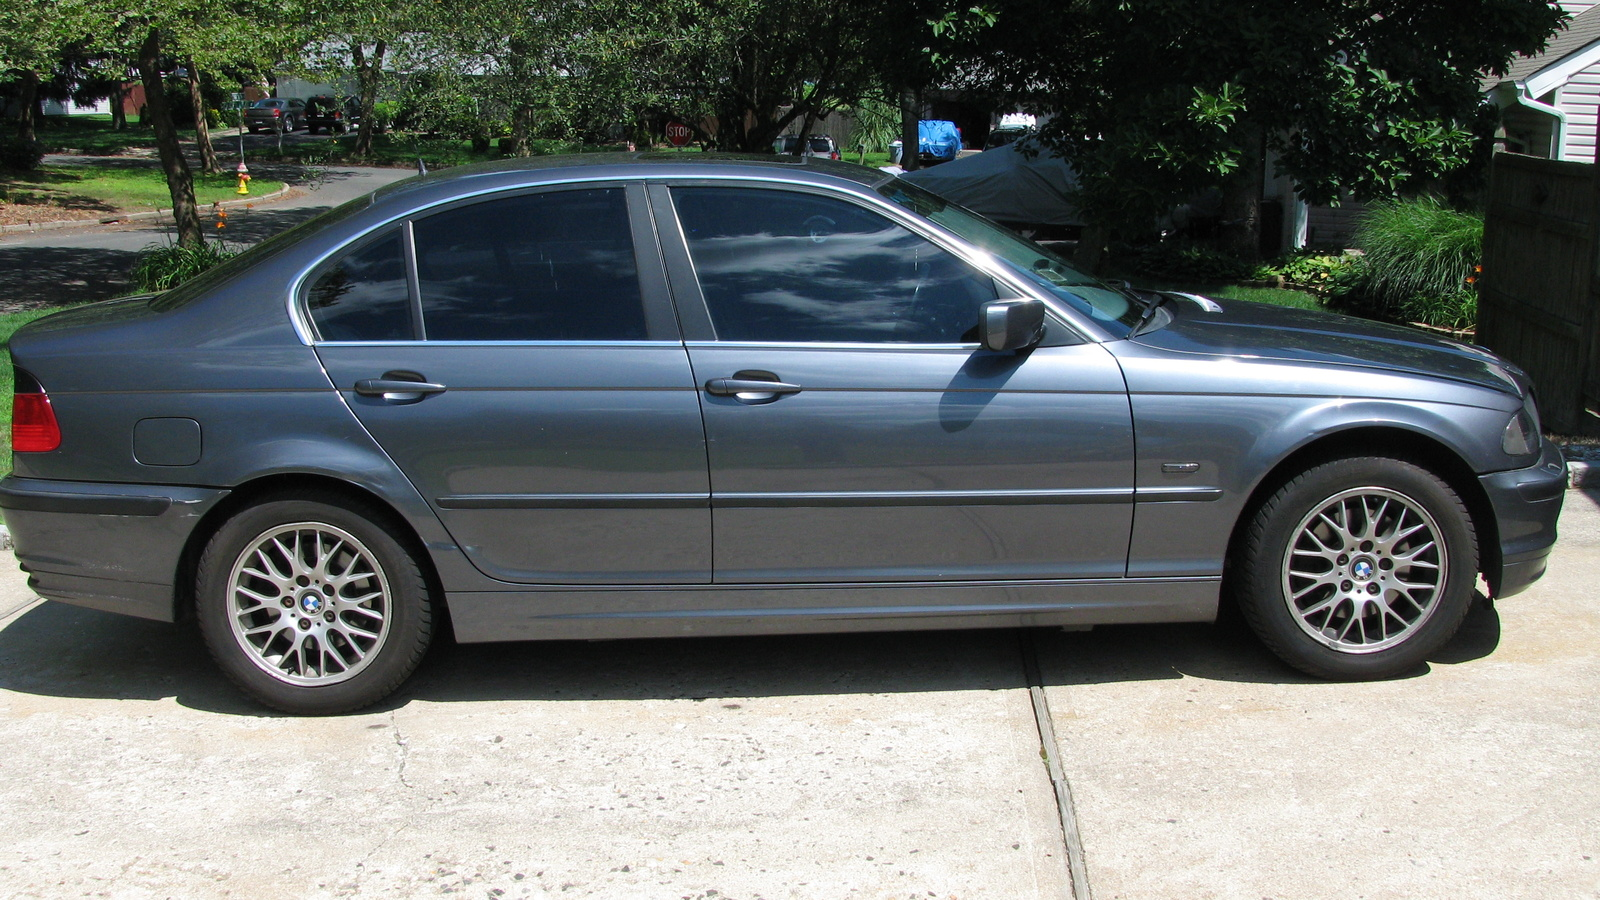 BMW 3 series 328i 2000 photo - 1